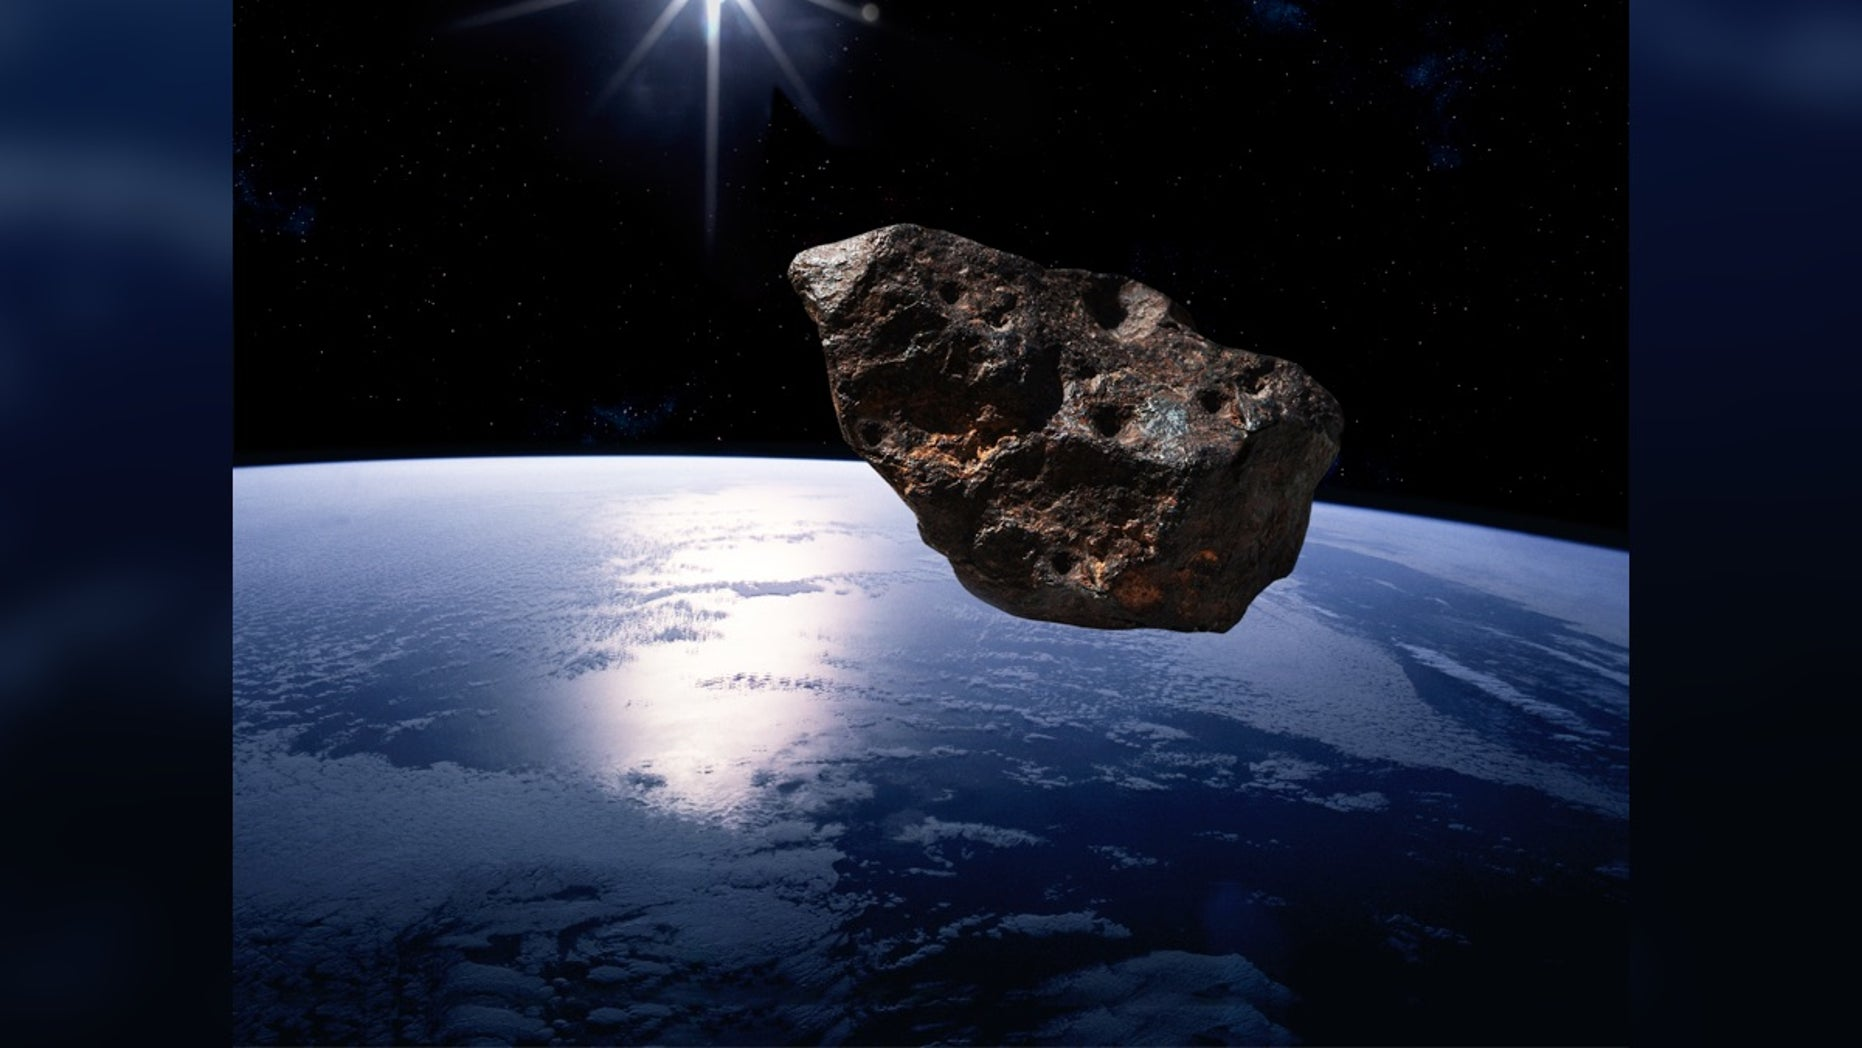 Westlake Legal Group asteroid-earth-NO-REUSE Huge 111-foot asteroid to skim past Earth at 22,000 mph, space rock's 'closest encounter for 115 years' The Sun fox-news/science/air-and-space/asteroids fnc/science fnc Digital Technology and Science Reporter Charlotte Edwards article 4309df15-395b-5ef1-bff0-b788eece9a82